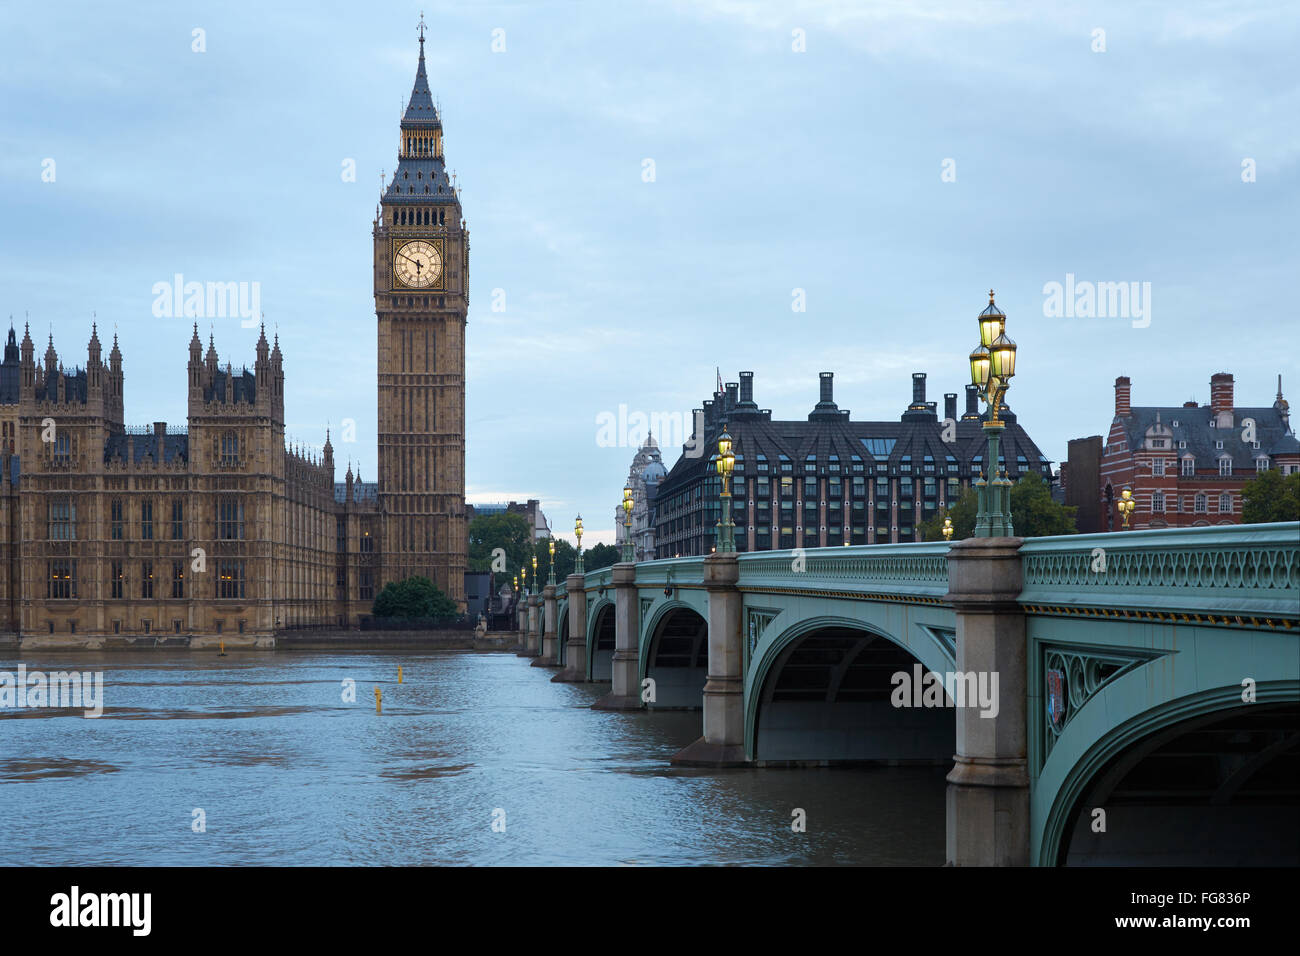 Big Ben and bridge in the early morning in London, natural colors and lights - Stock Image